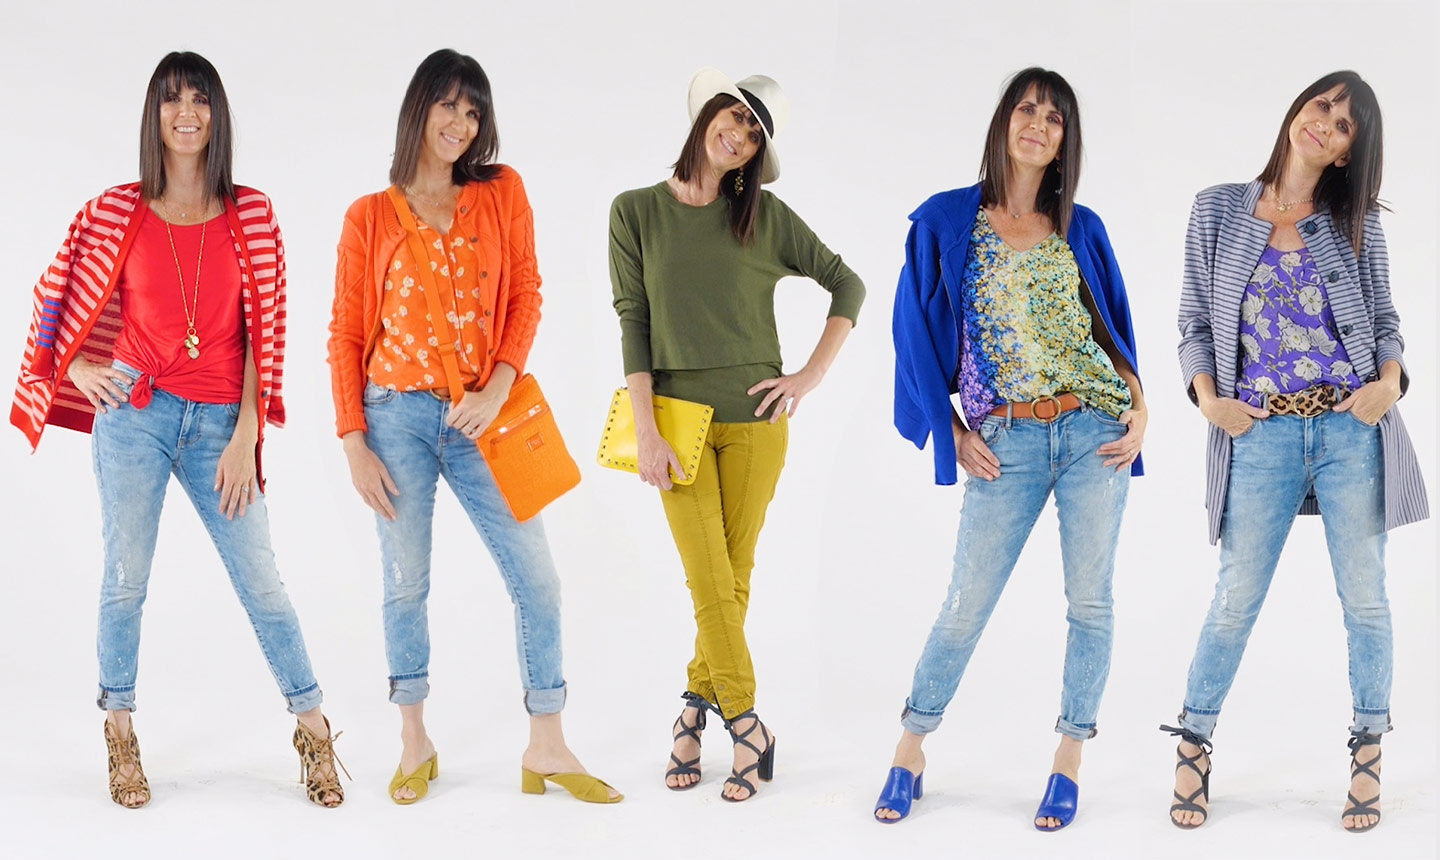 color your mood with these spring colors - Cabi Spring 7 Collection